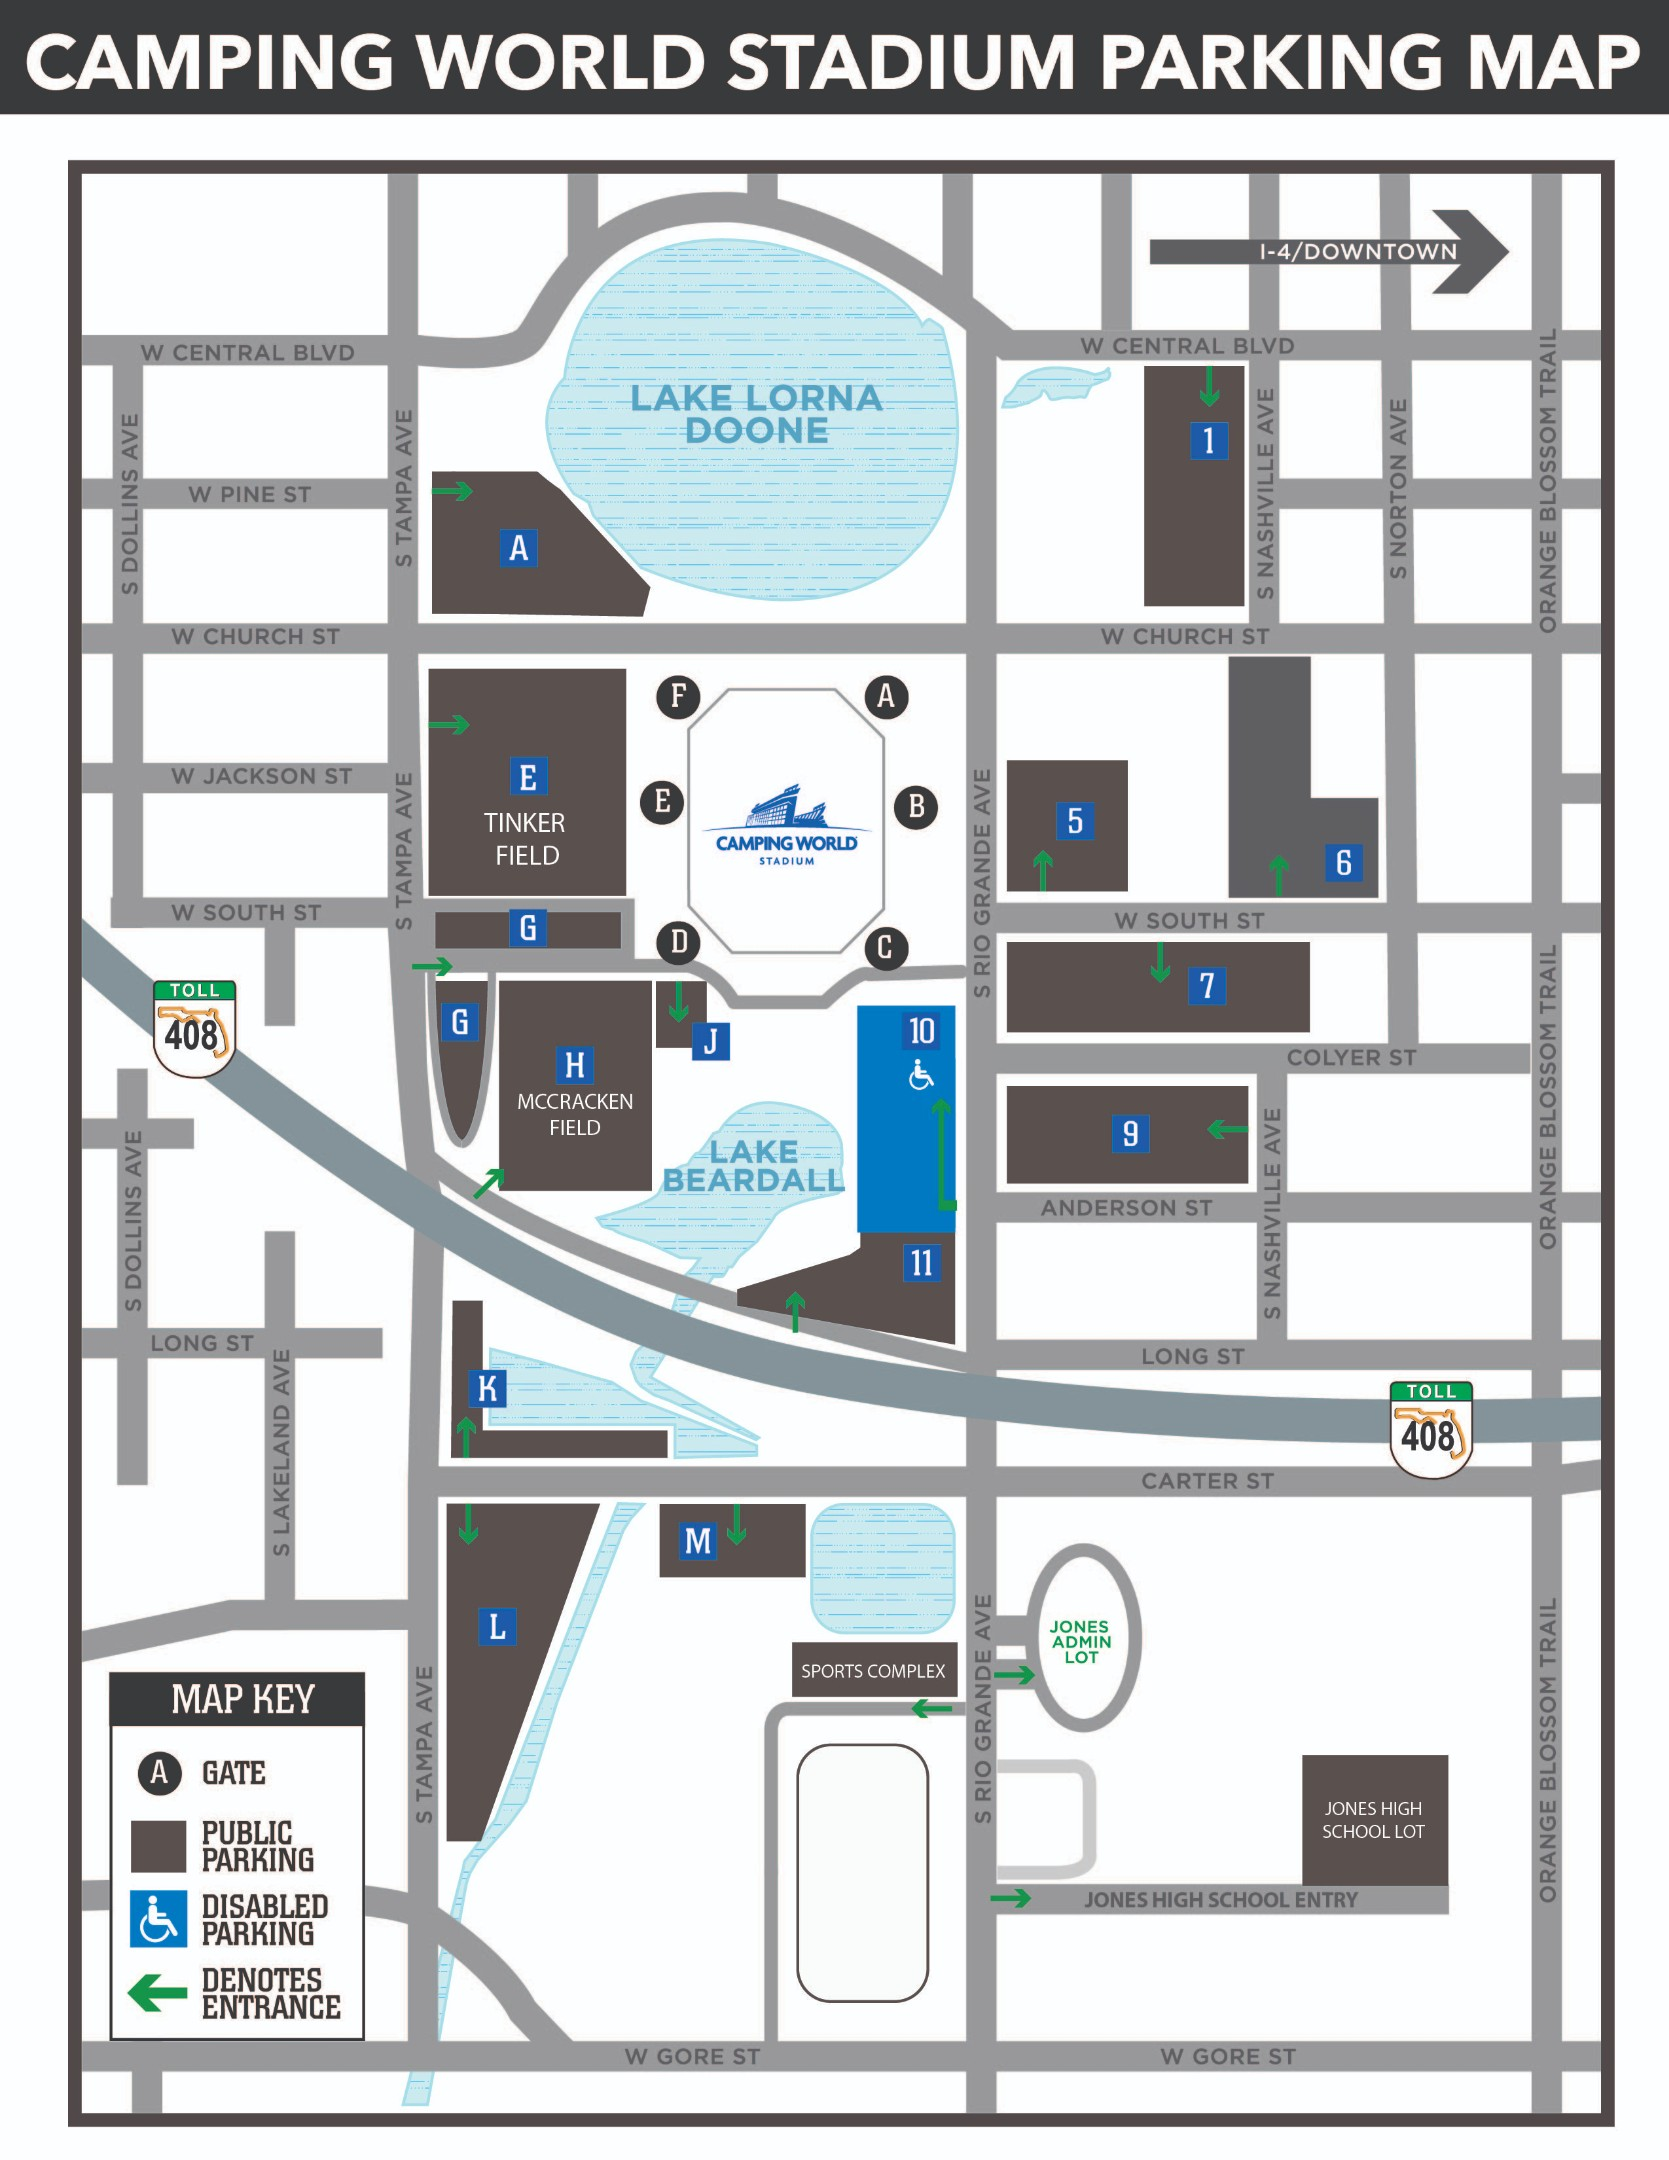 Camping World Stadium Parking Map